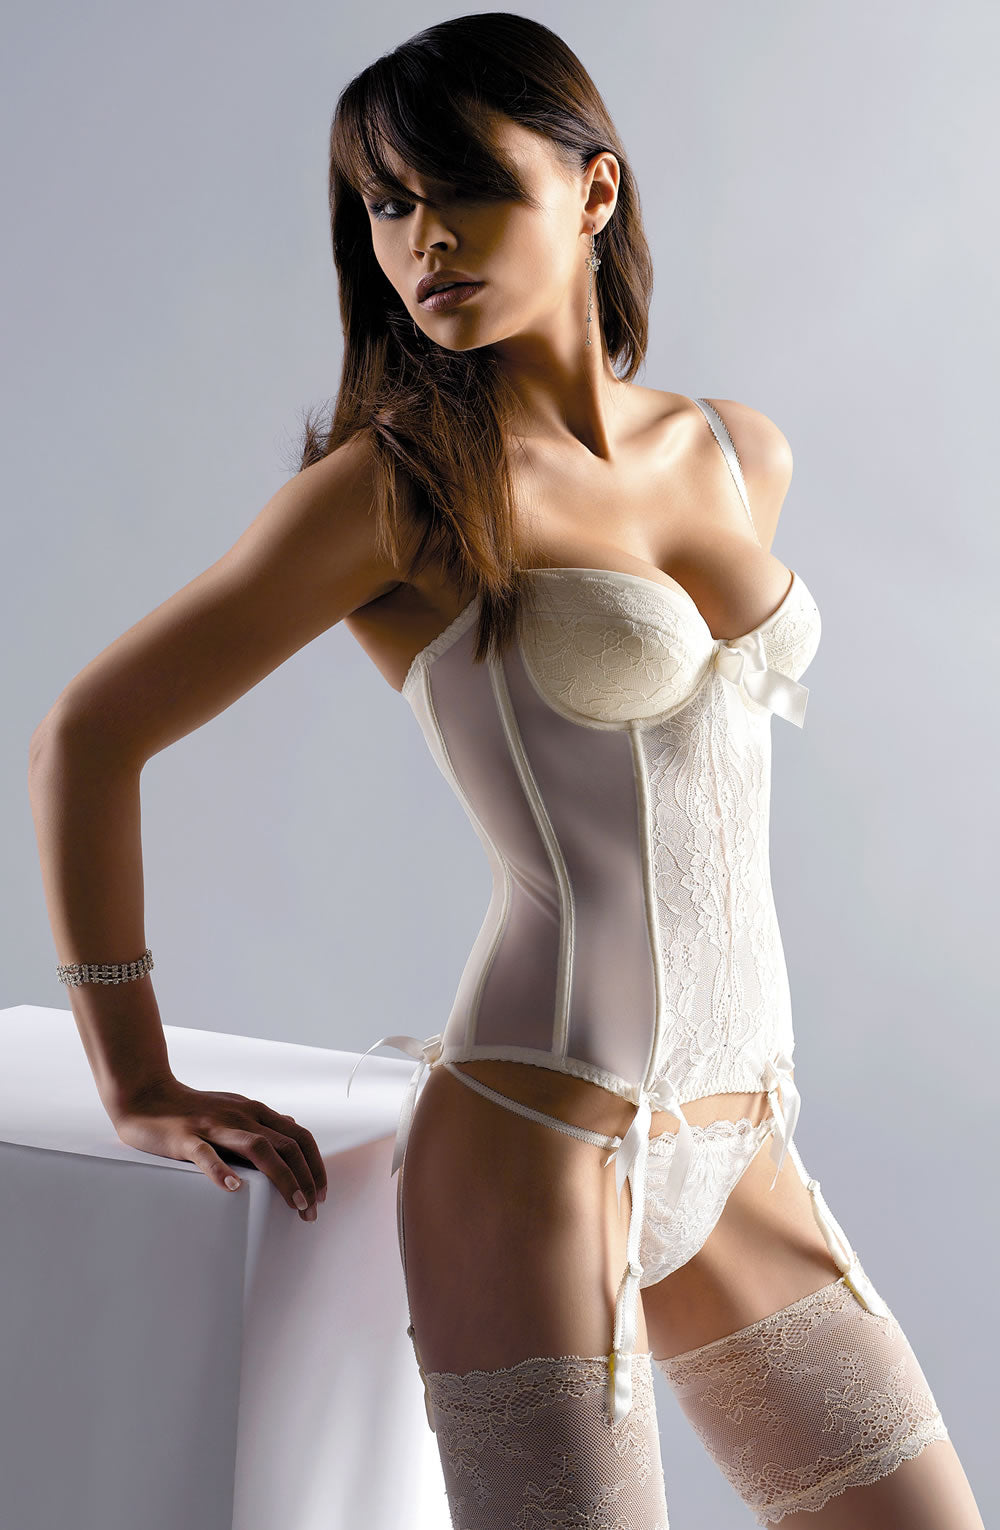 1 Gracya Crystal Basque  Corsets, Gracya, Honeymoon, Lingerie Sets, NEWLY-IMPORTED - So Luxe Lingerie